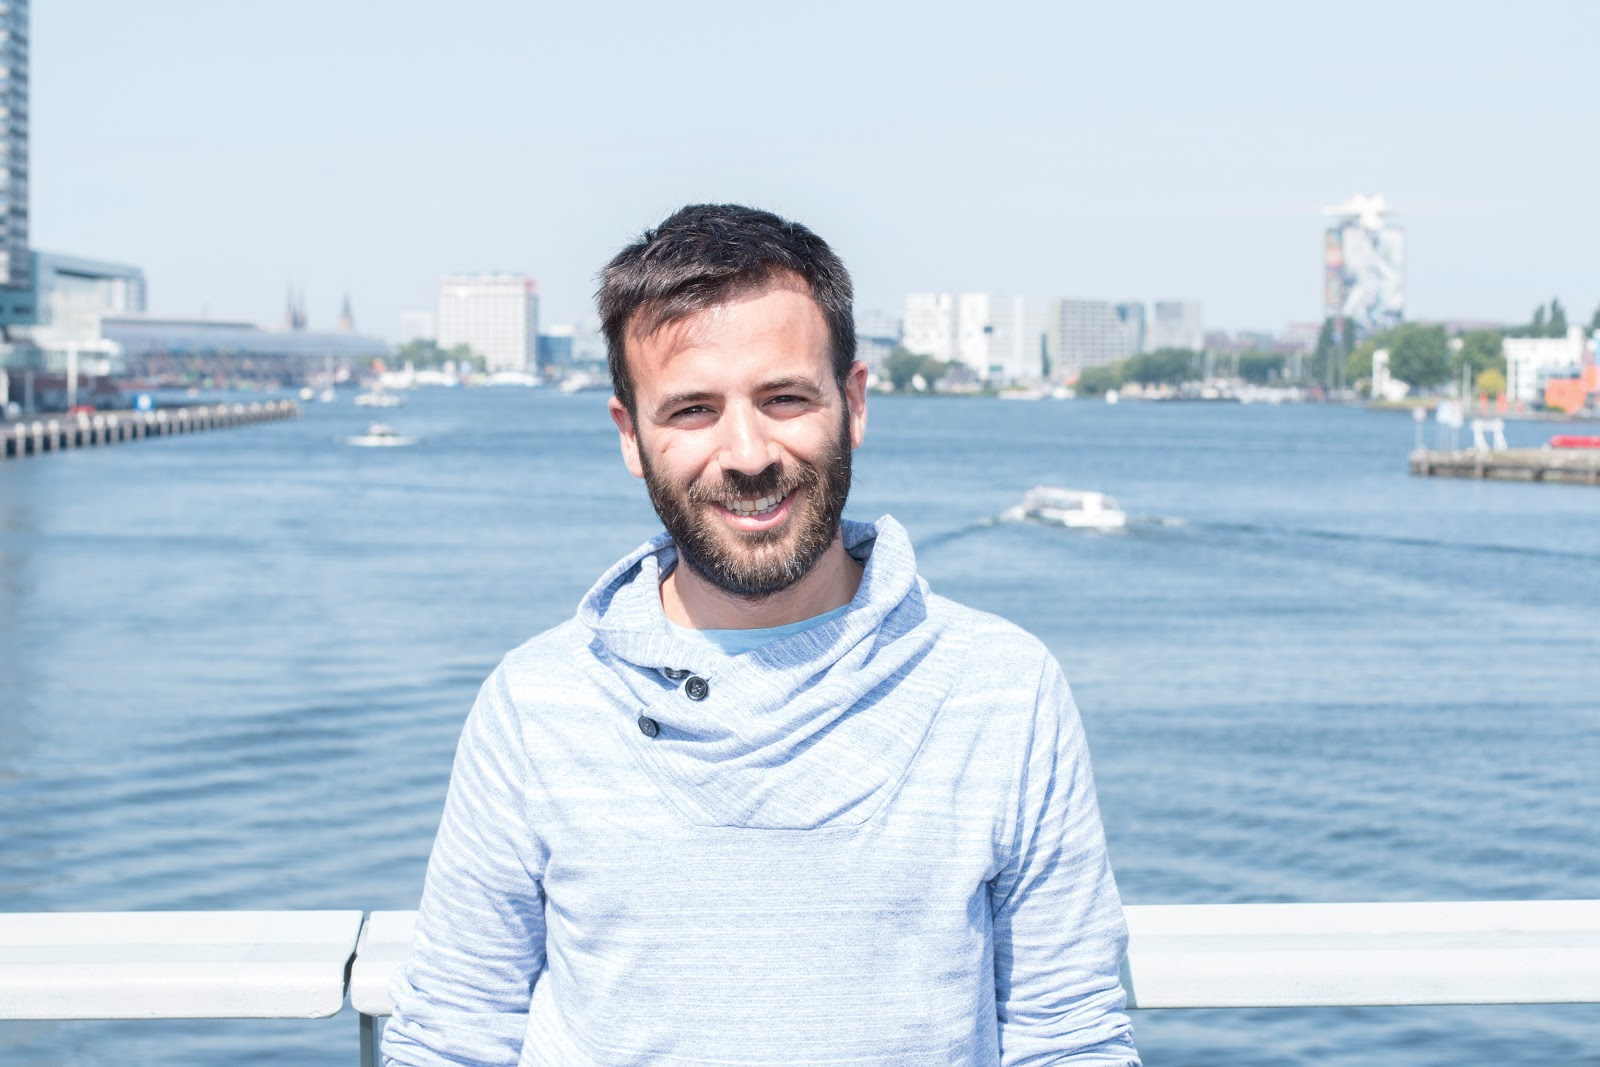 Fairphone co-founder and circular innovation lead Miquel Ballester Salvà is doing his best to reduce e-waste in mobile phones